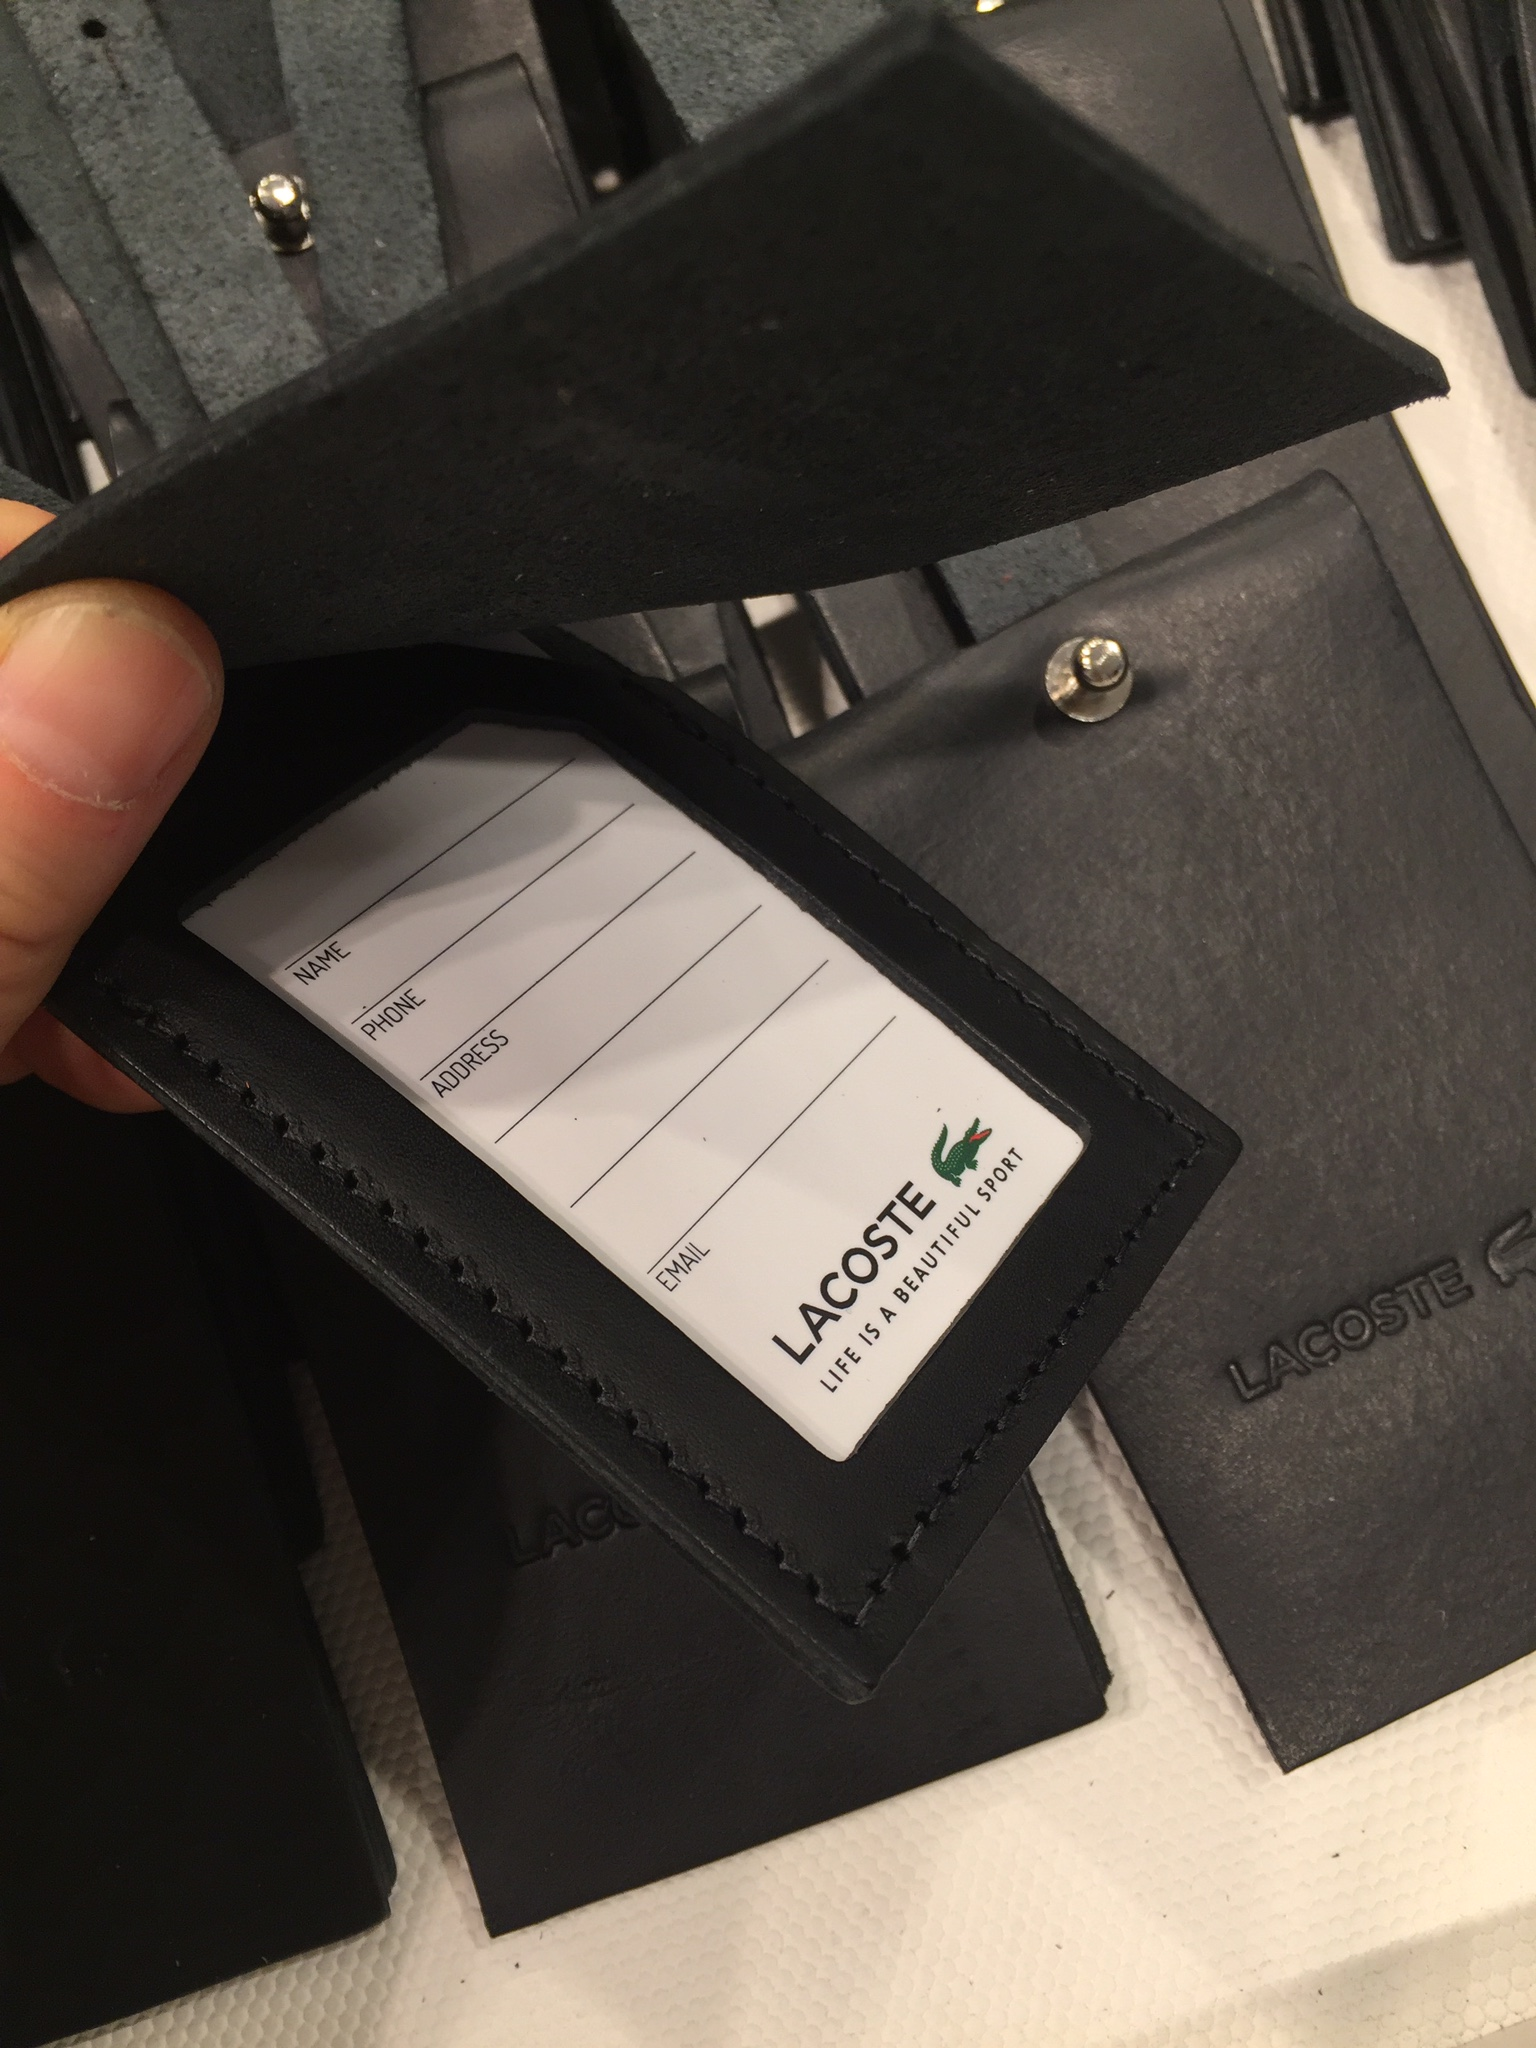 Lacoste luggage tag